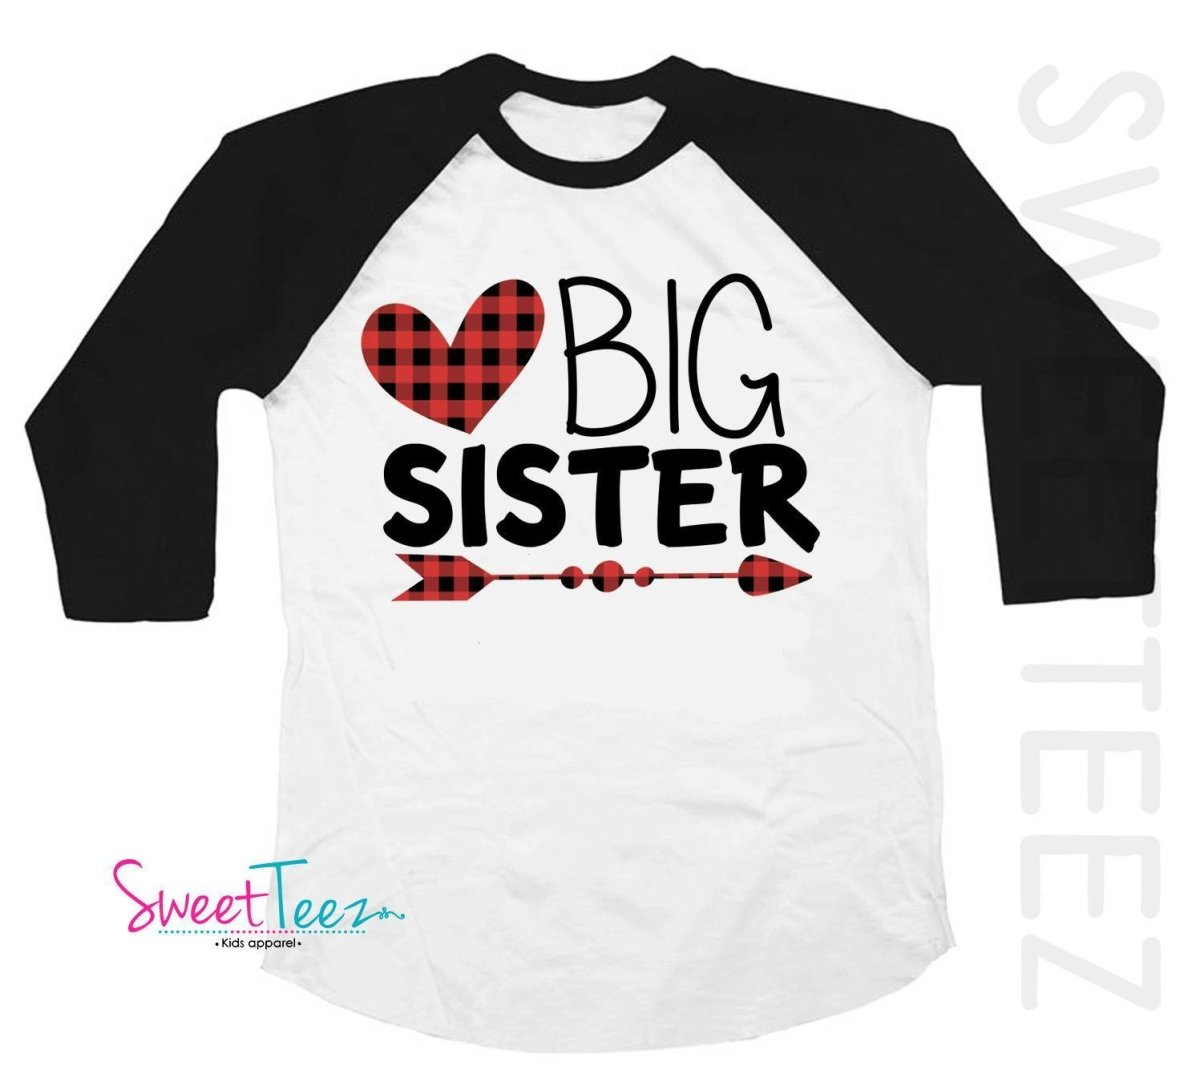 Some Bunny is going to be a BIG Sister  Easter Toddler and Youth Raglan  Big Sister Shirt  Pregnancy Announcement Pink